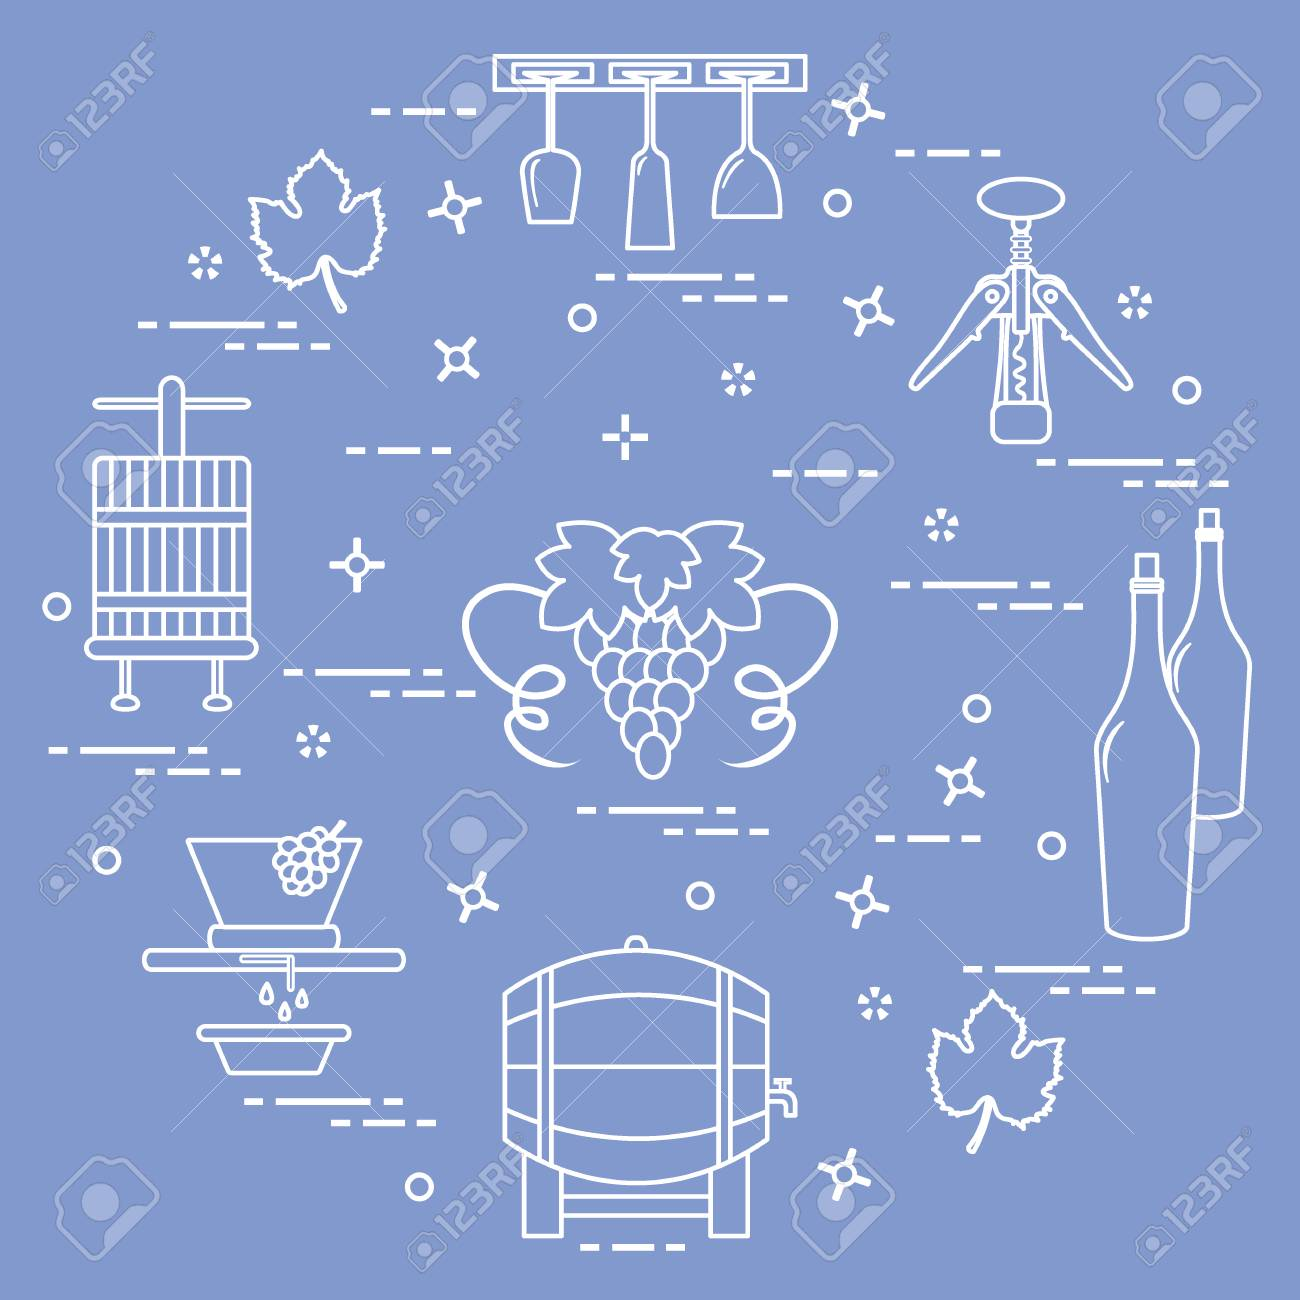 Winemaking: the production and storage of wine. Culture of drinking wine. Design for announcement, advertisement, print. - 91759145